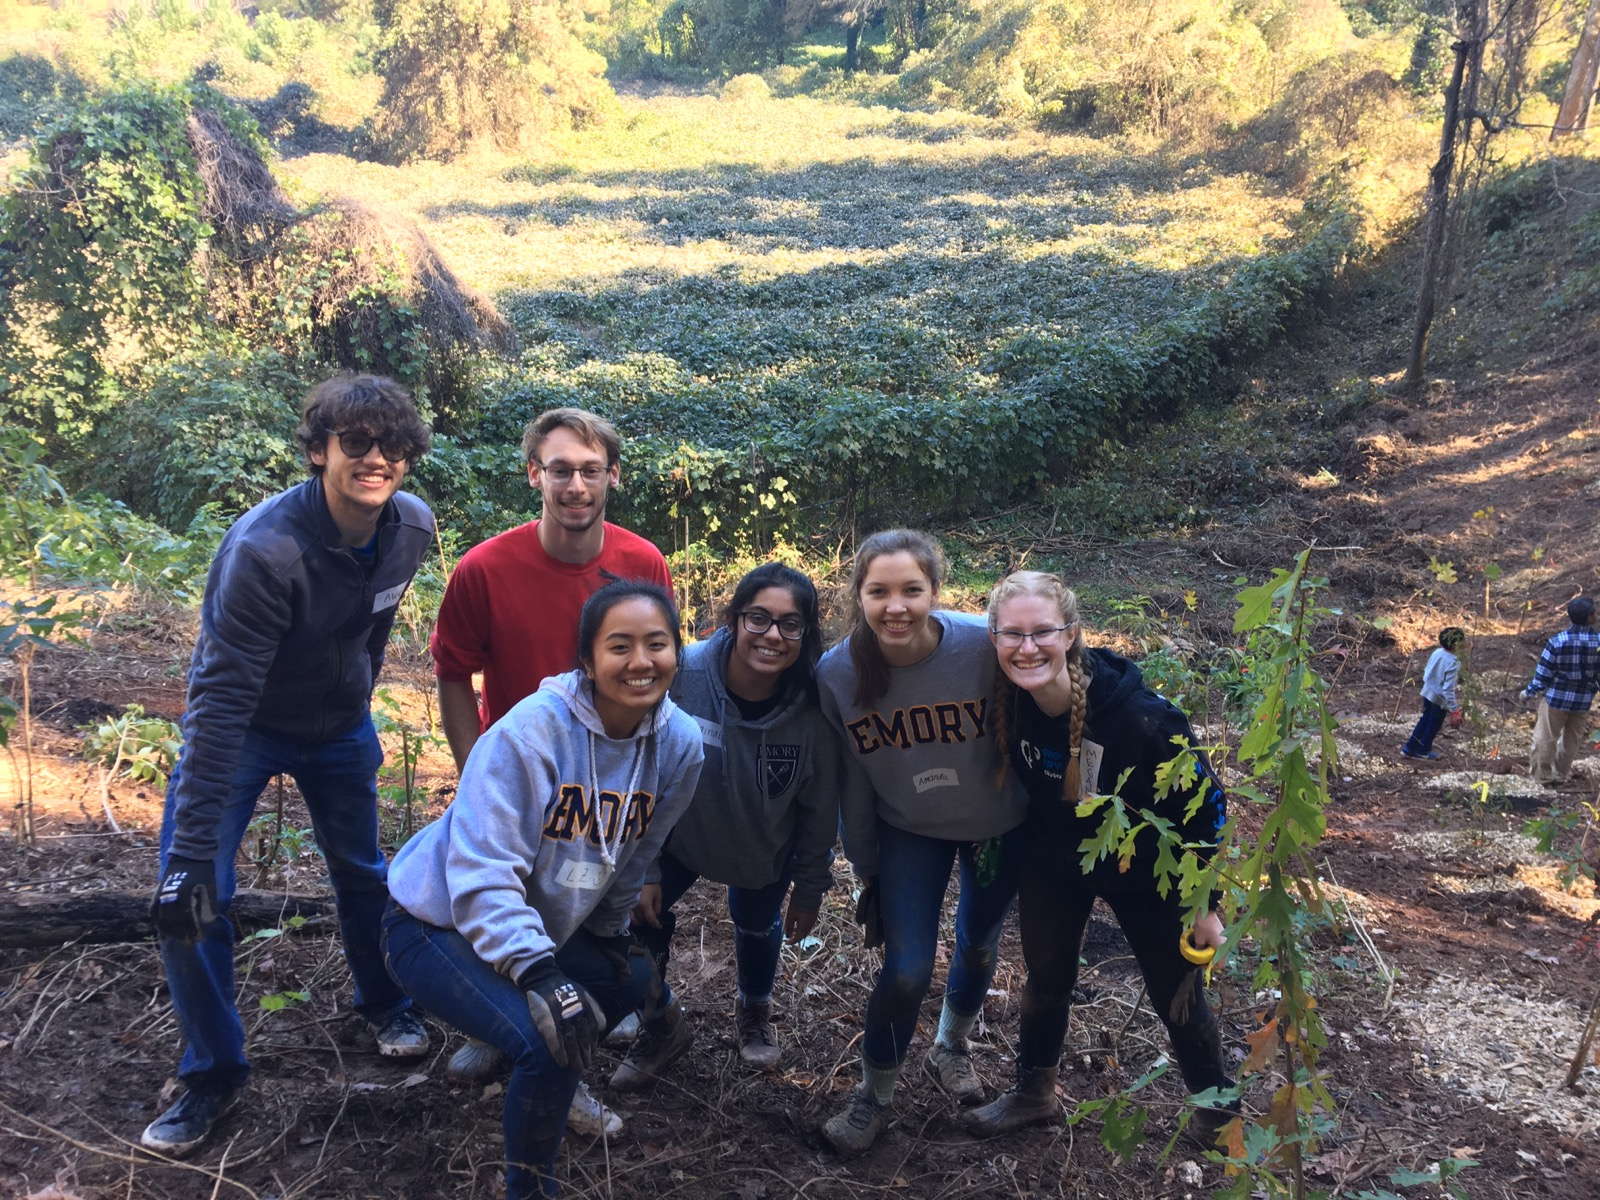 Megan Johnston volunteering with Emory students